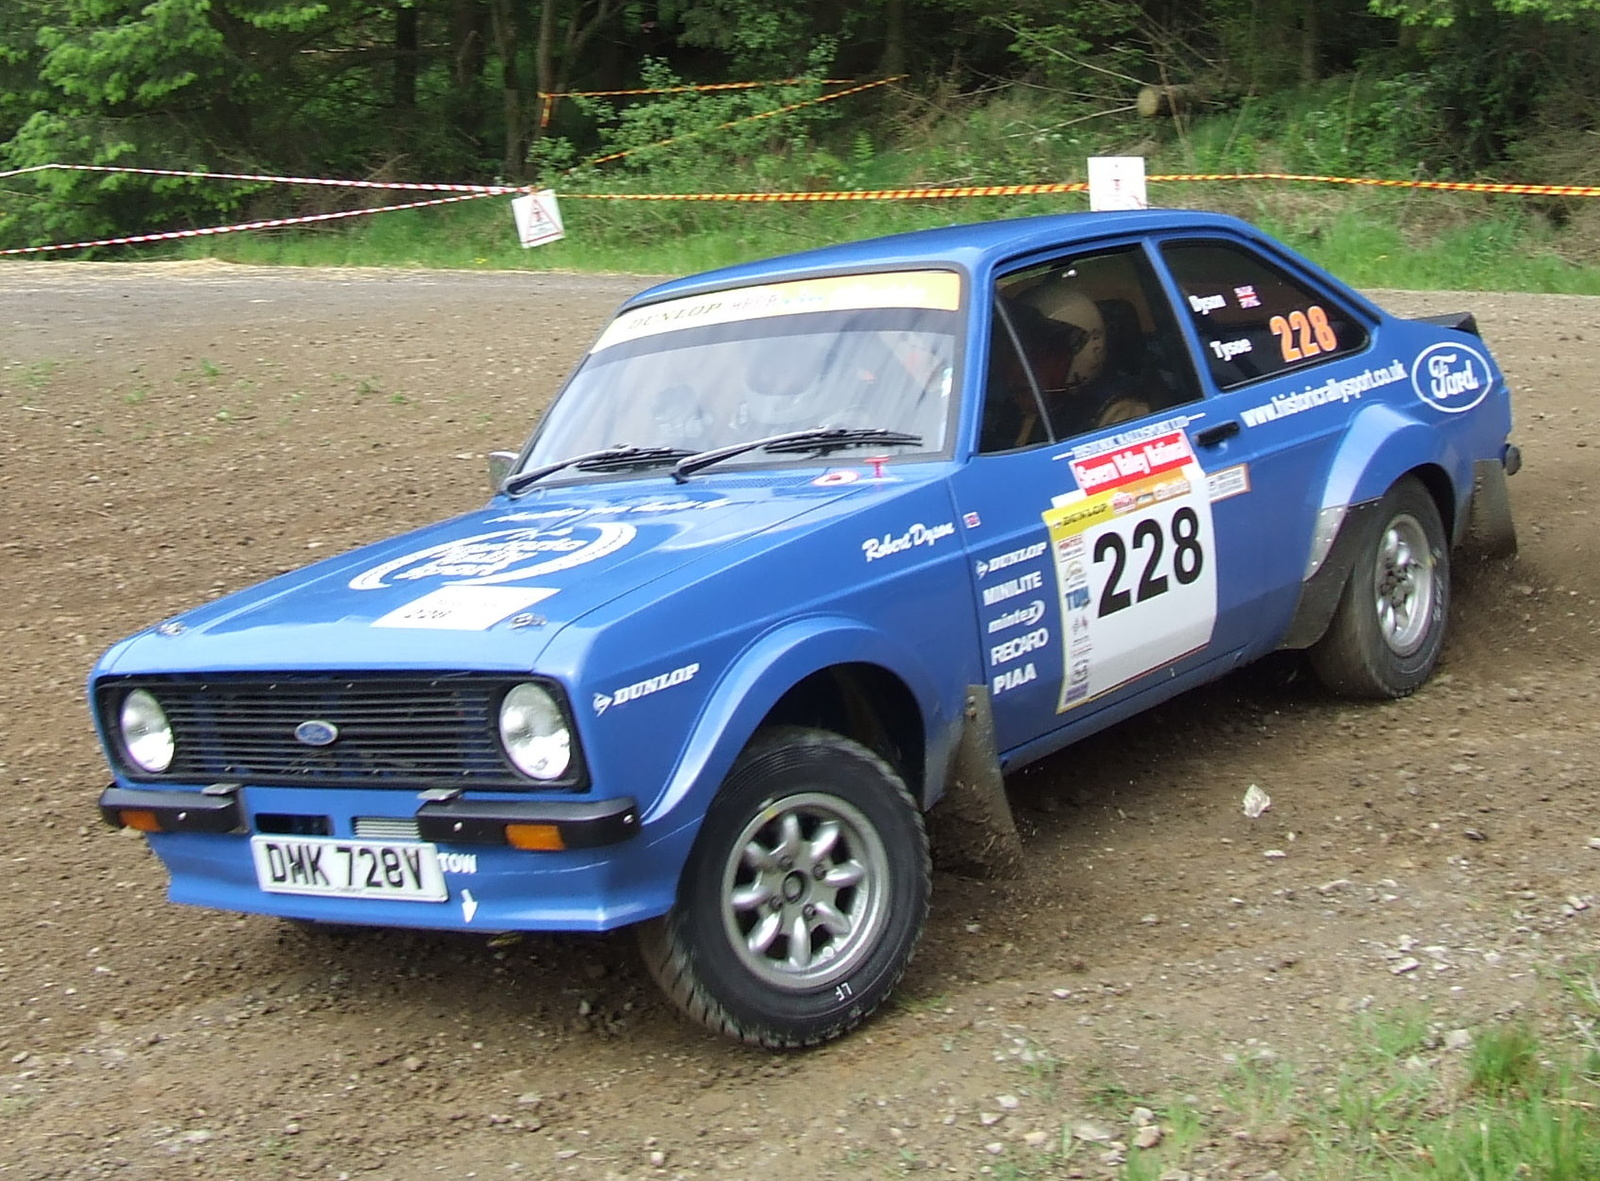 Ford Escort 1976 photo - 7